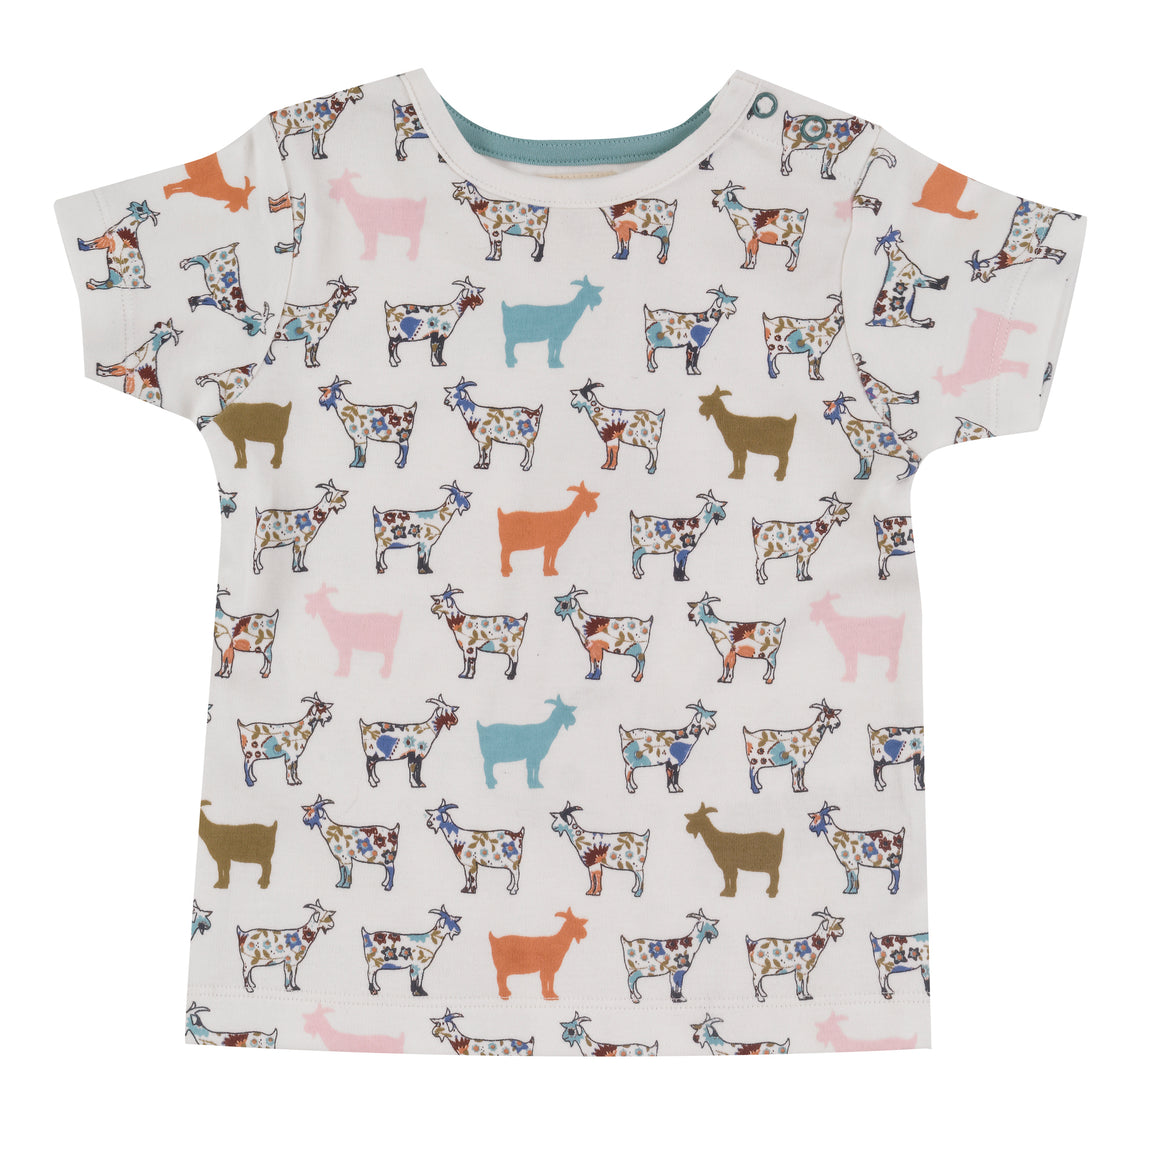 Short sleeve T-shirt in goat print